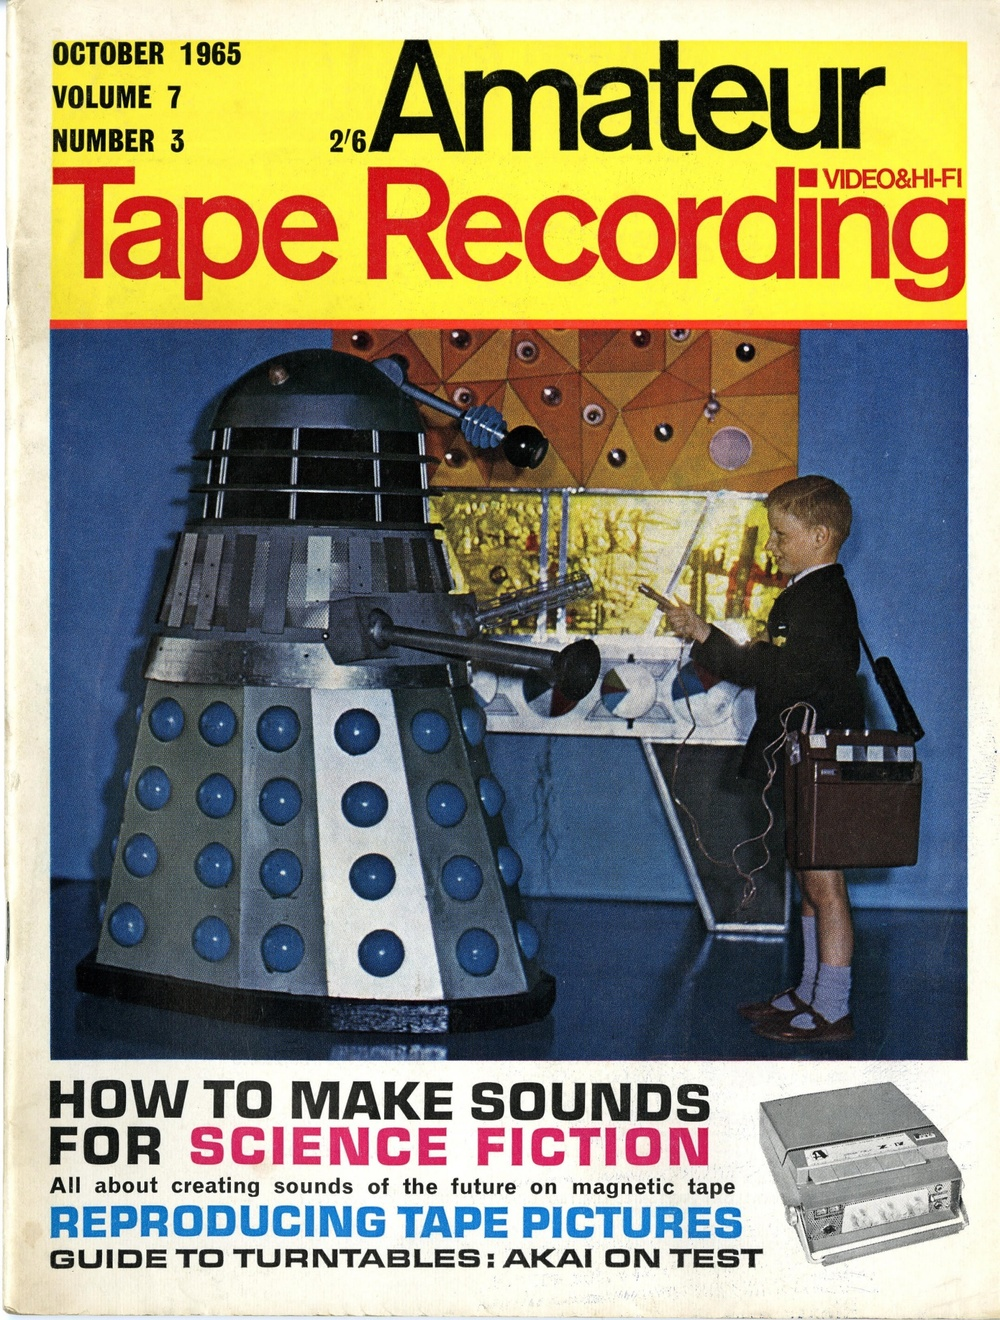 Amateur Tape Recording, October 1965